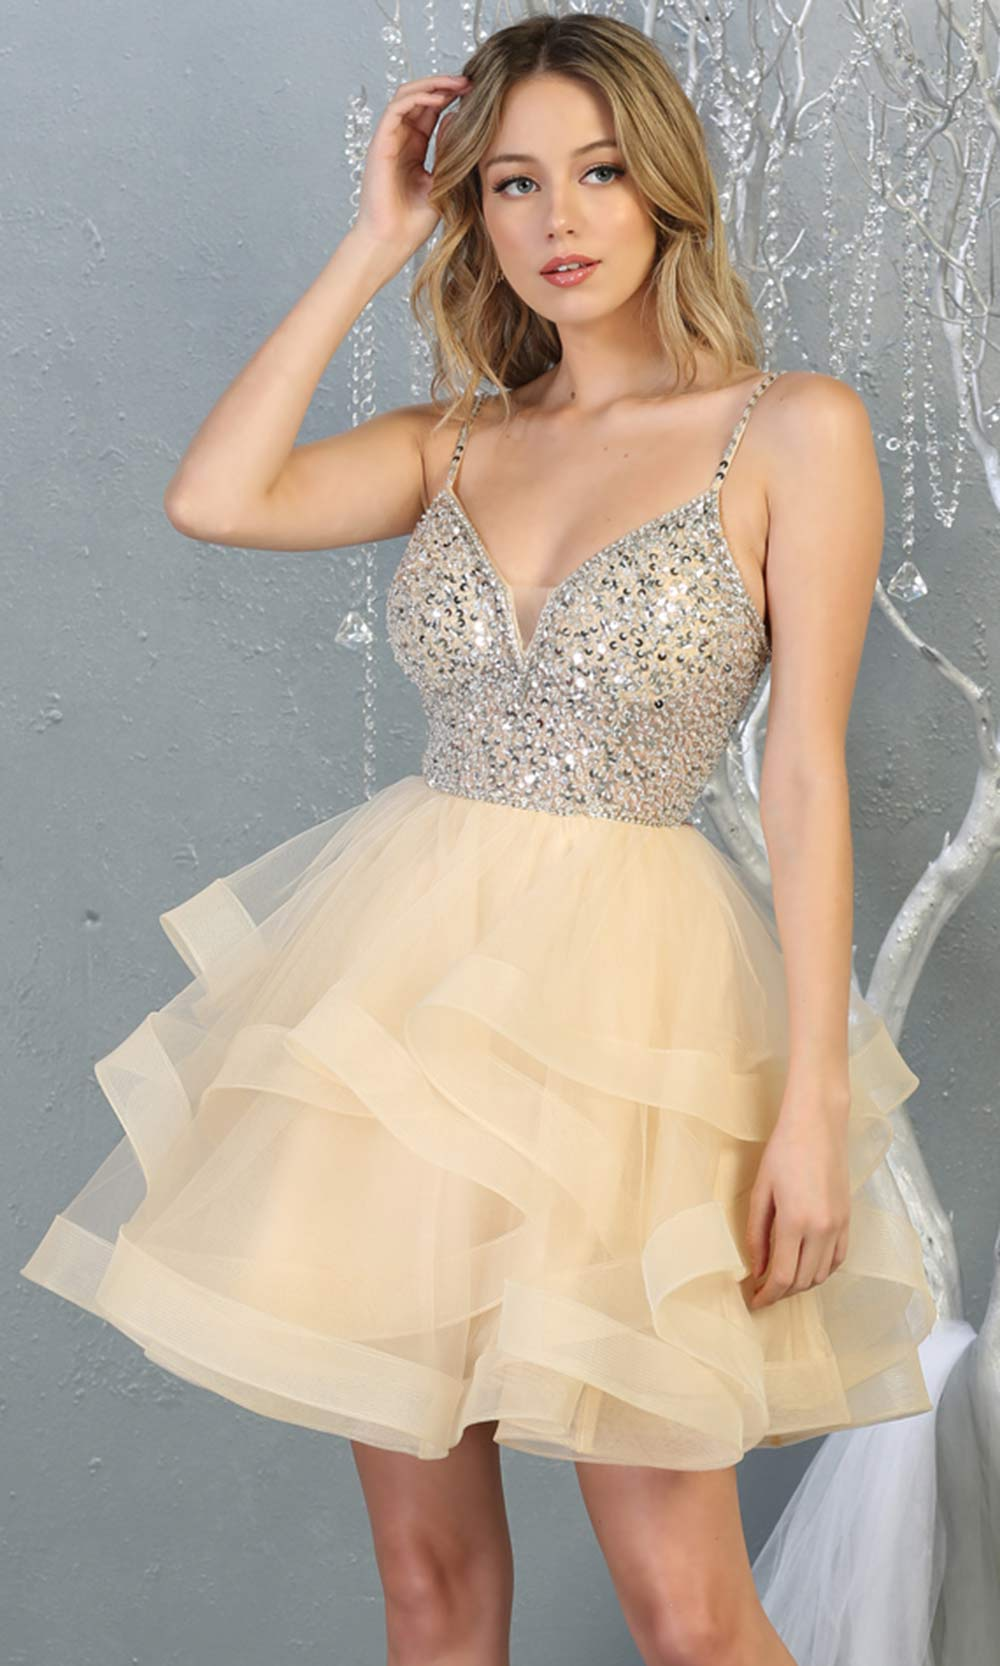 Mayqueen MQ1818 short champagne v neck flowy grade 8 graduation dress w/beaded top & puffy tier skirt. Light gold party dress is perfect for prom, graduation, grade 8 grad, confirmation dress, bat mitzvah dress, damas. Plus sizes avail for grad dress.jpg